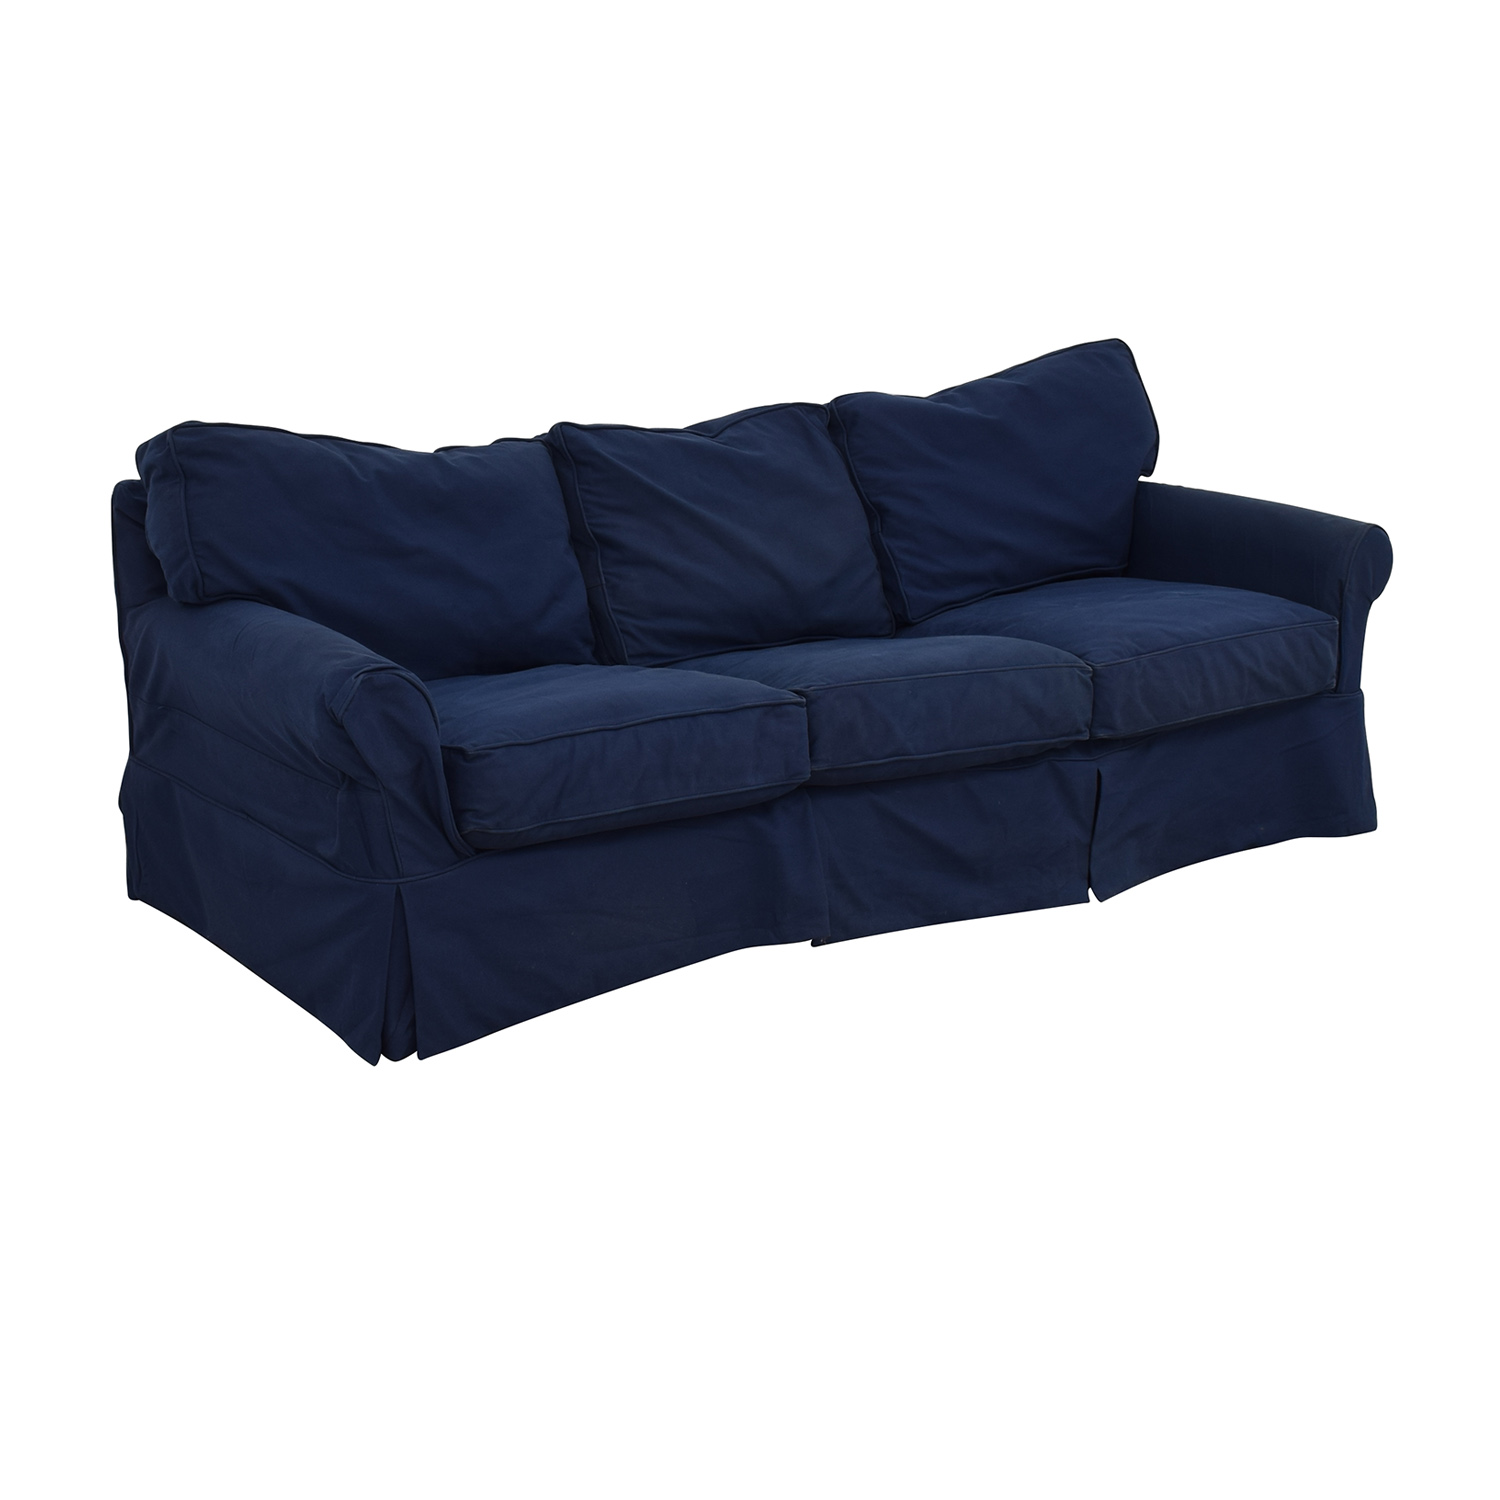 Crate & Barrel Crate & Barrel Sleeper Sofa second hand